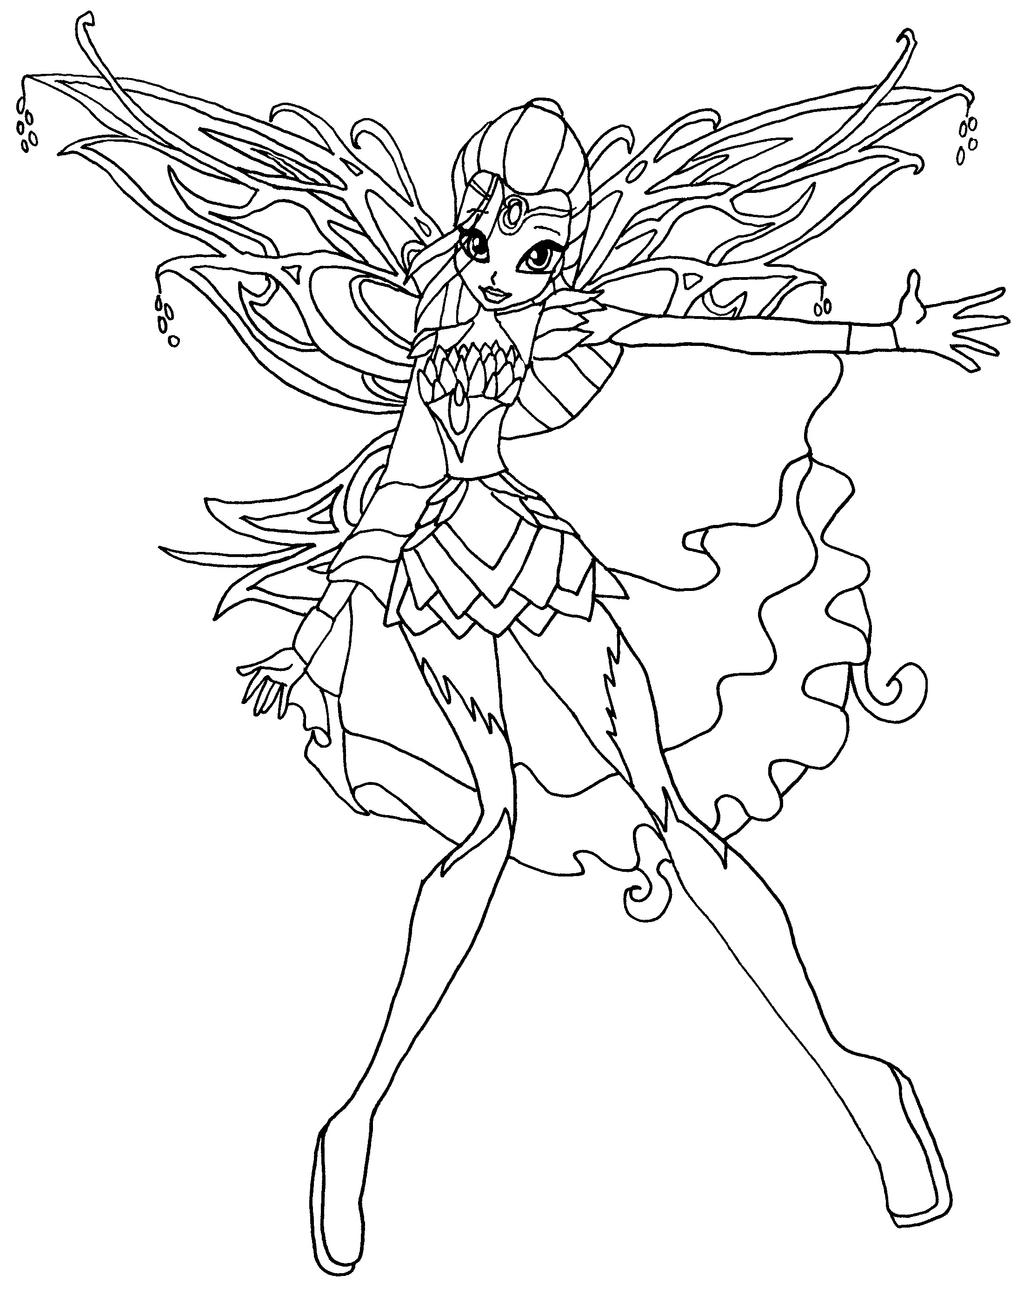 Winx fairy bloom coloring pages - Hellokids.com